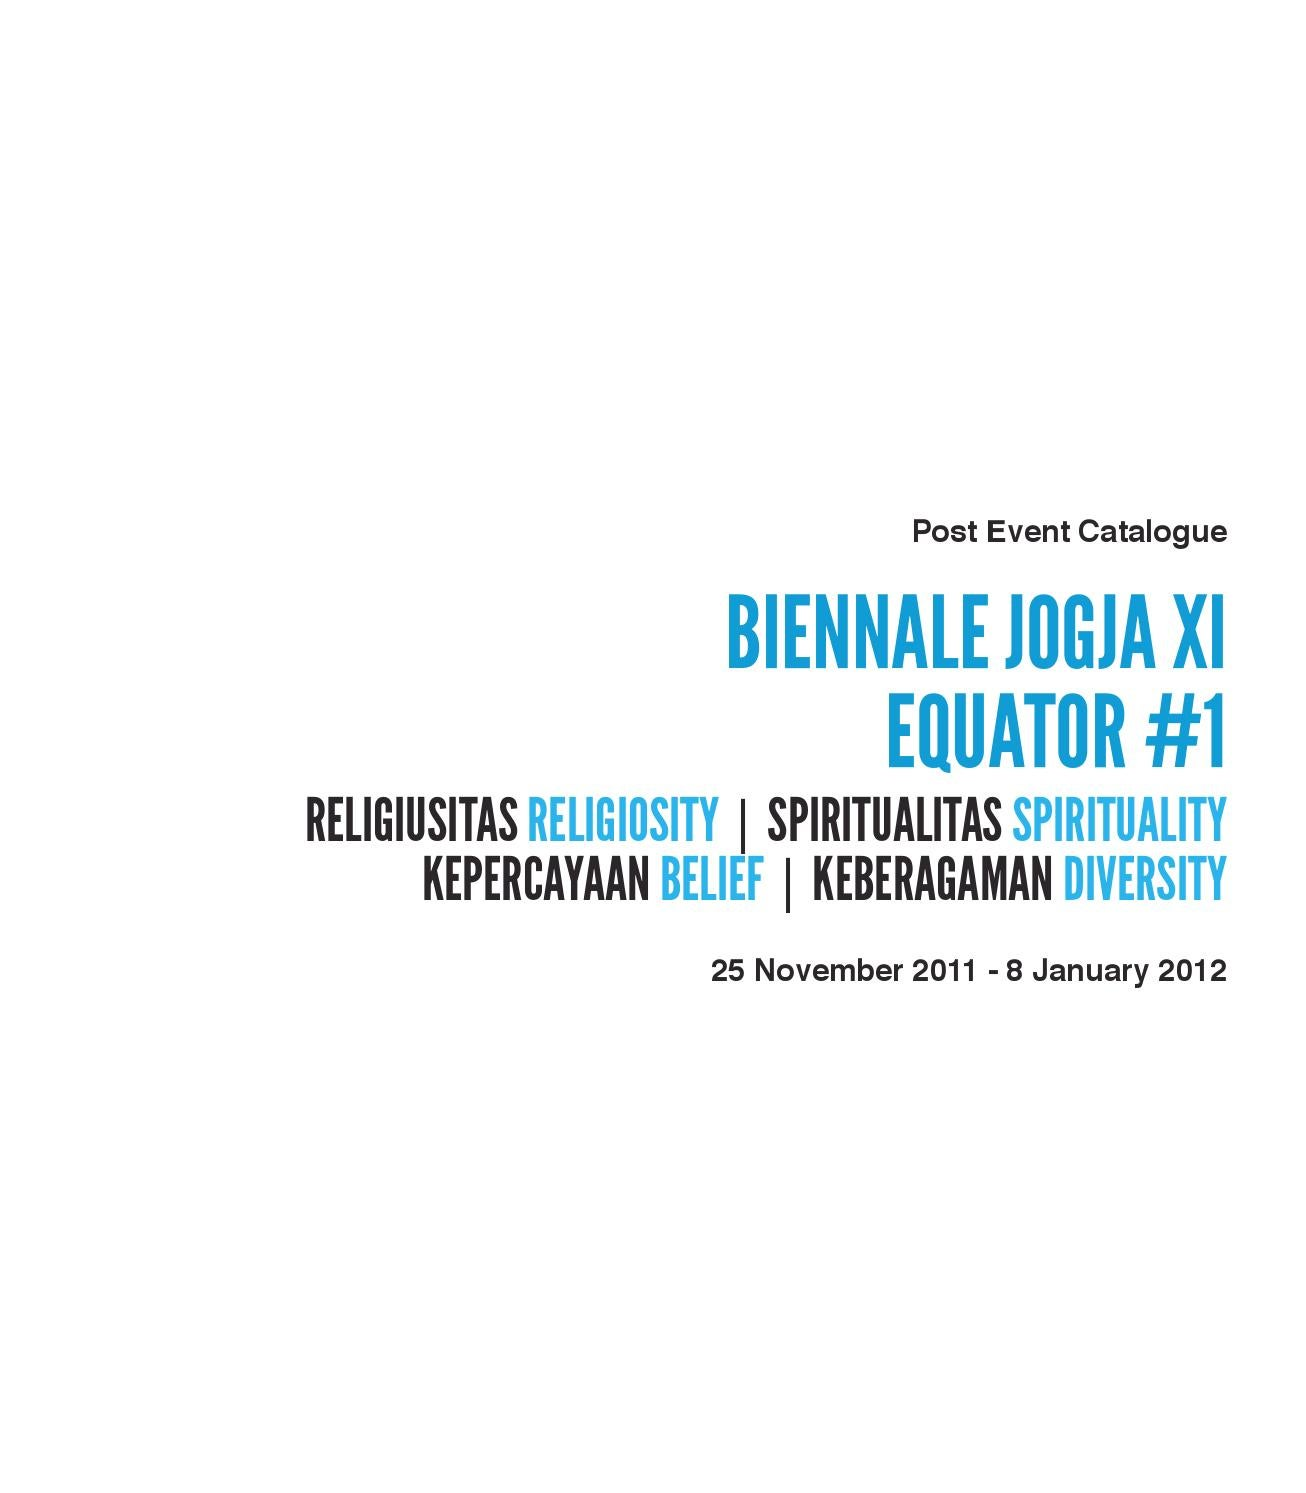 Post Event Catalogue Parallel Events Biennale Jogja XI By